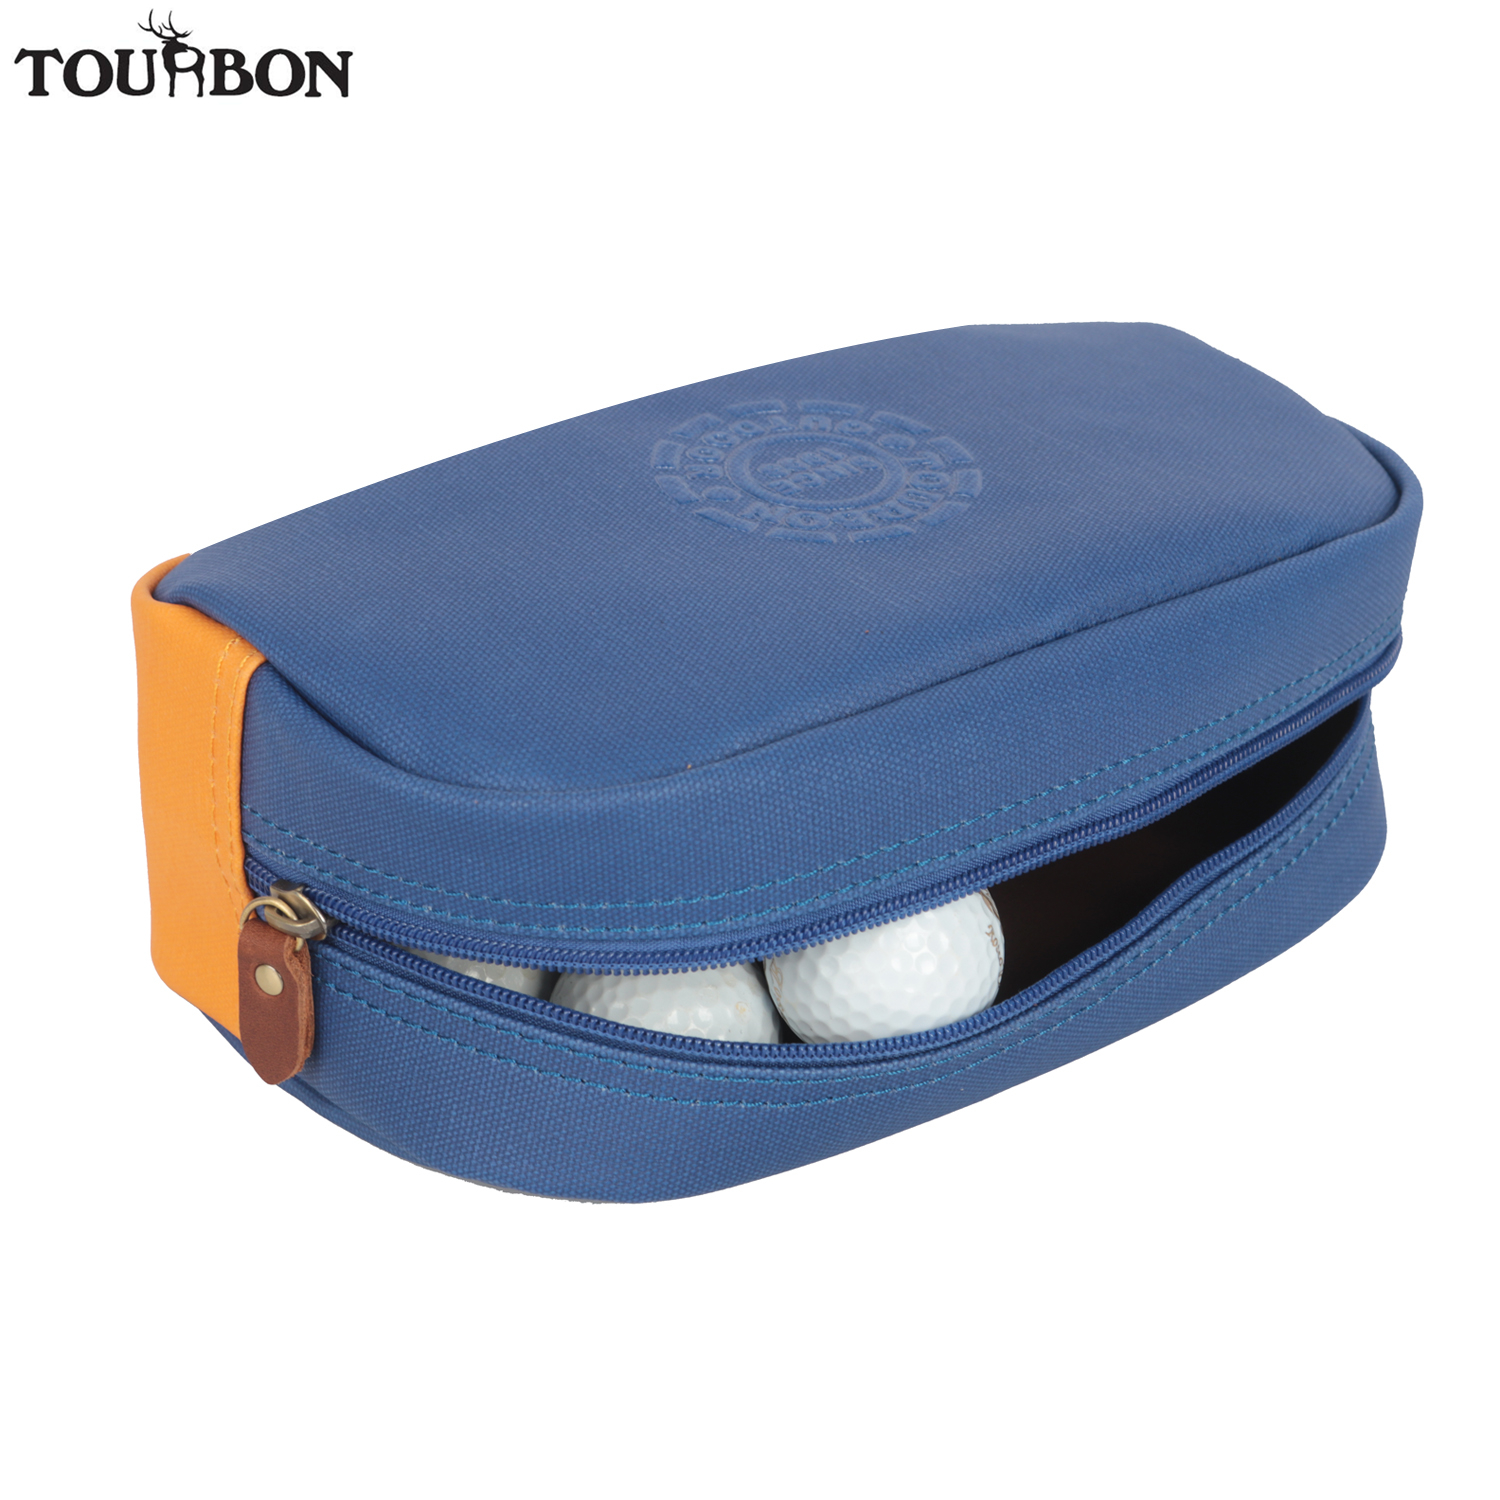 Tourbon Retro Sports Small Golf Ball Bag Carrier Balls Pouch Case Divot Tool Holder Vintage Canvas